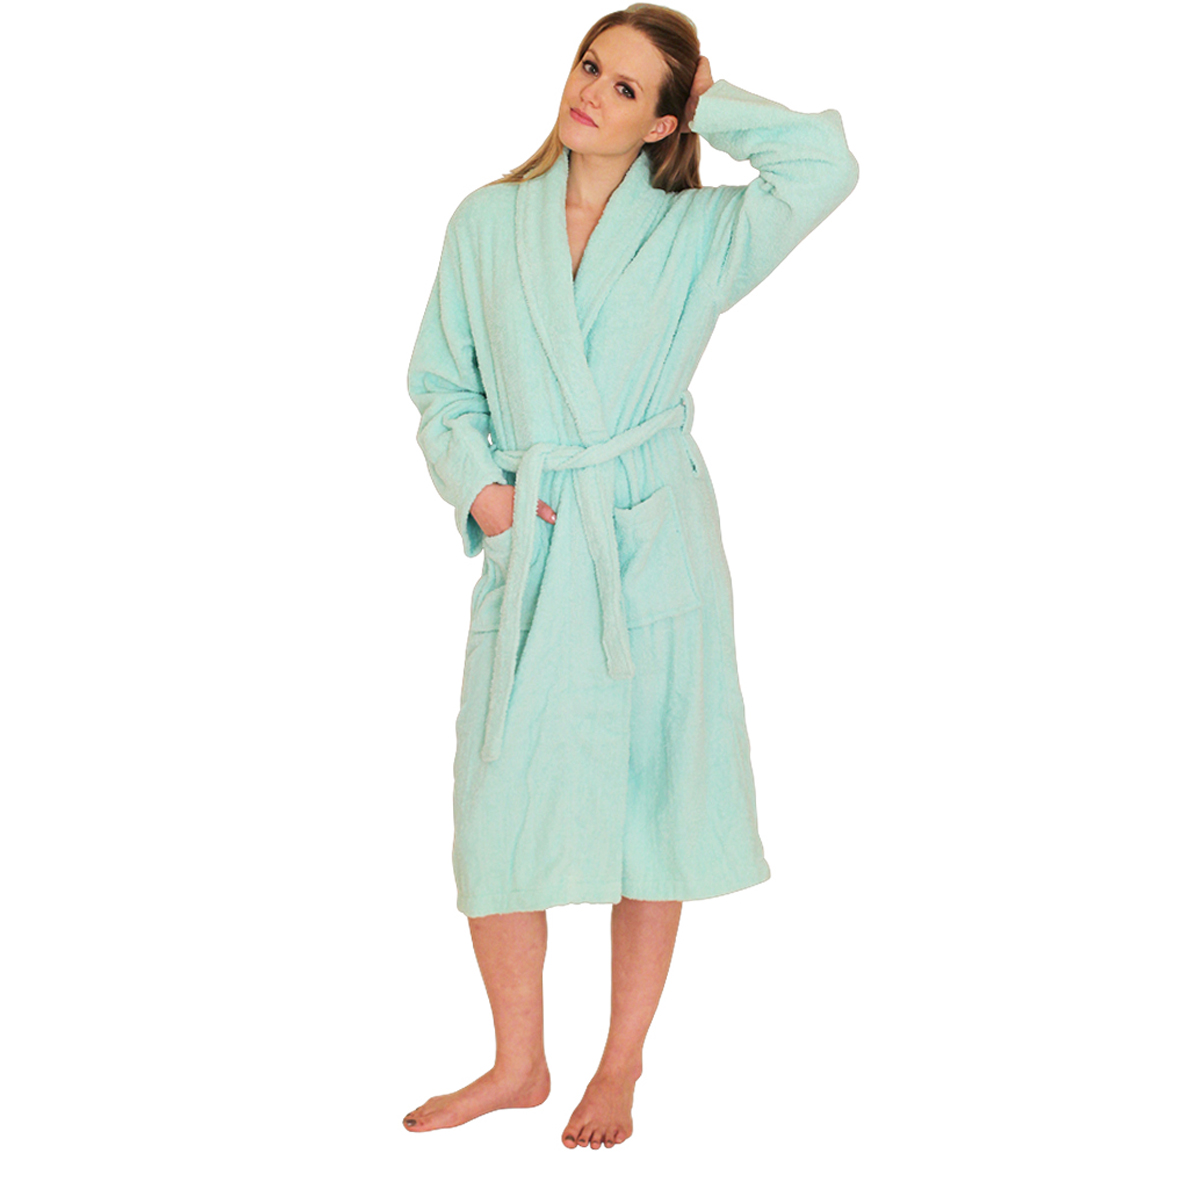 Bathrobe TerryCloth (Terry cloth) Bath Robe for women- $34.99 Colors: Ecru-S/M Ecru-2X/3X(+$5) Fuschia-S/M Fuchsia-L/XL Fuchsia-2X/3X(+$5) Mint-S/M Mint-L/XL Mint-2X/3X(+$5) Navy-S/M Navy-L/XL Navy-2X/3X(+$5) Teal-S/M White-S/M White-L/XL White-2X/3X(+$5). Sizes: